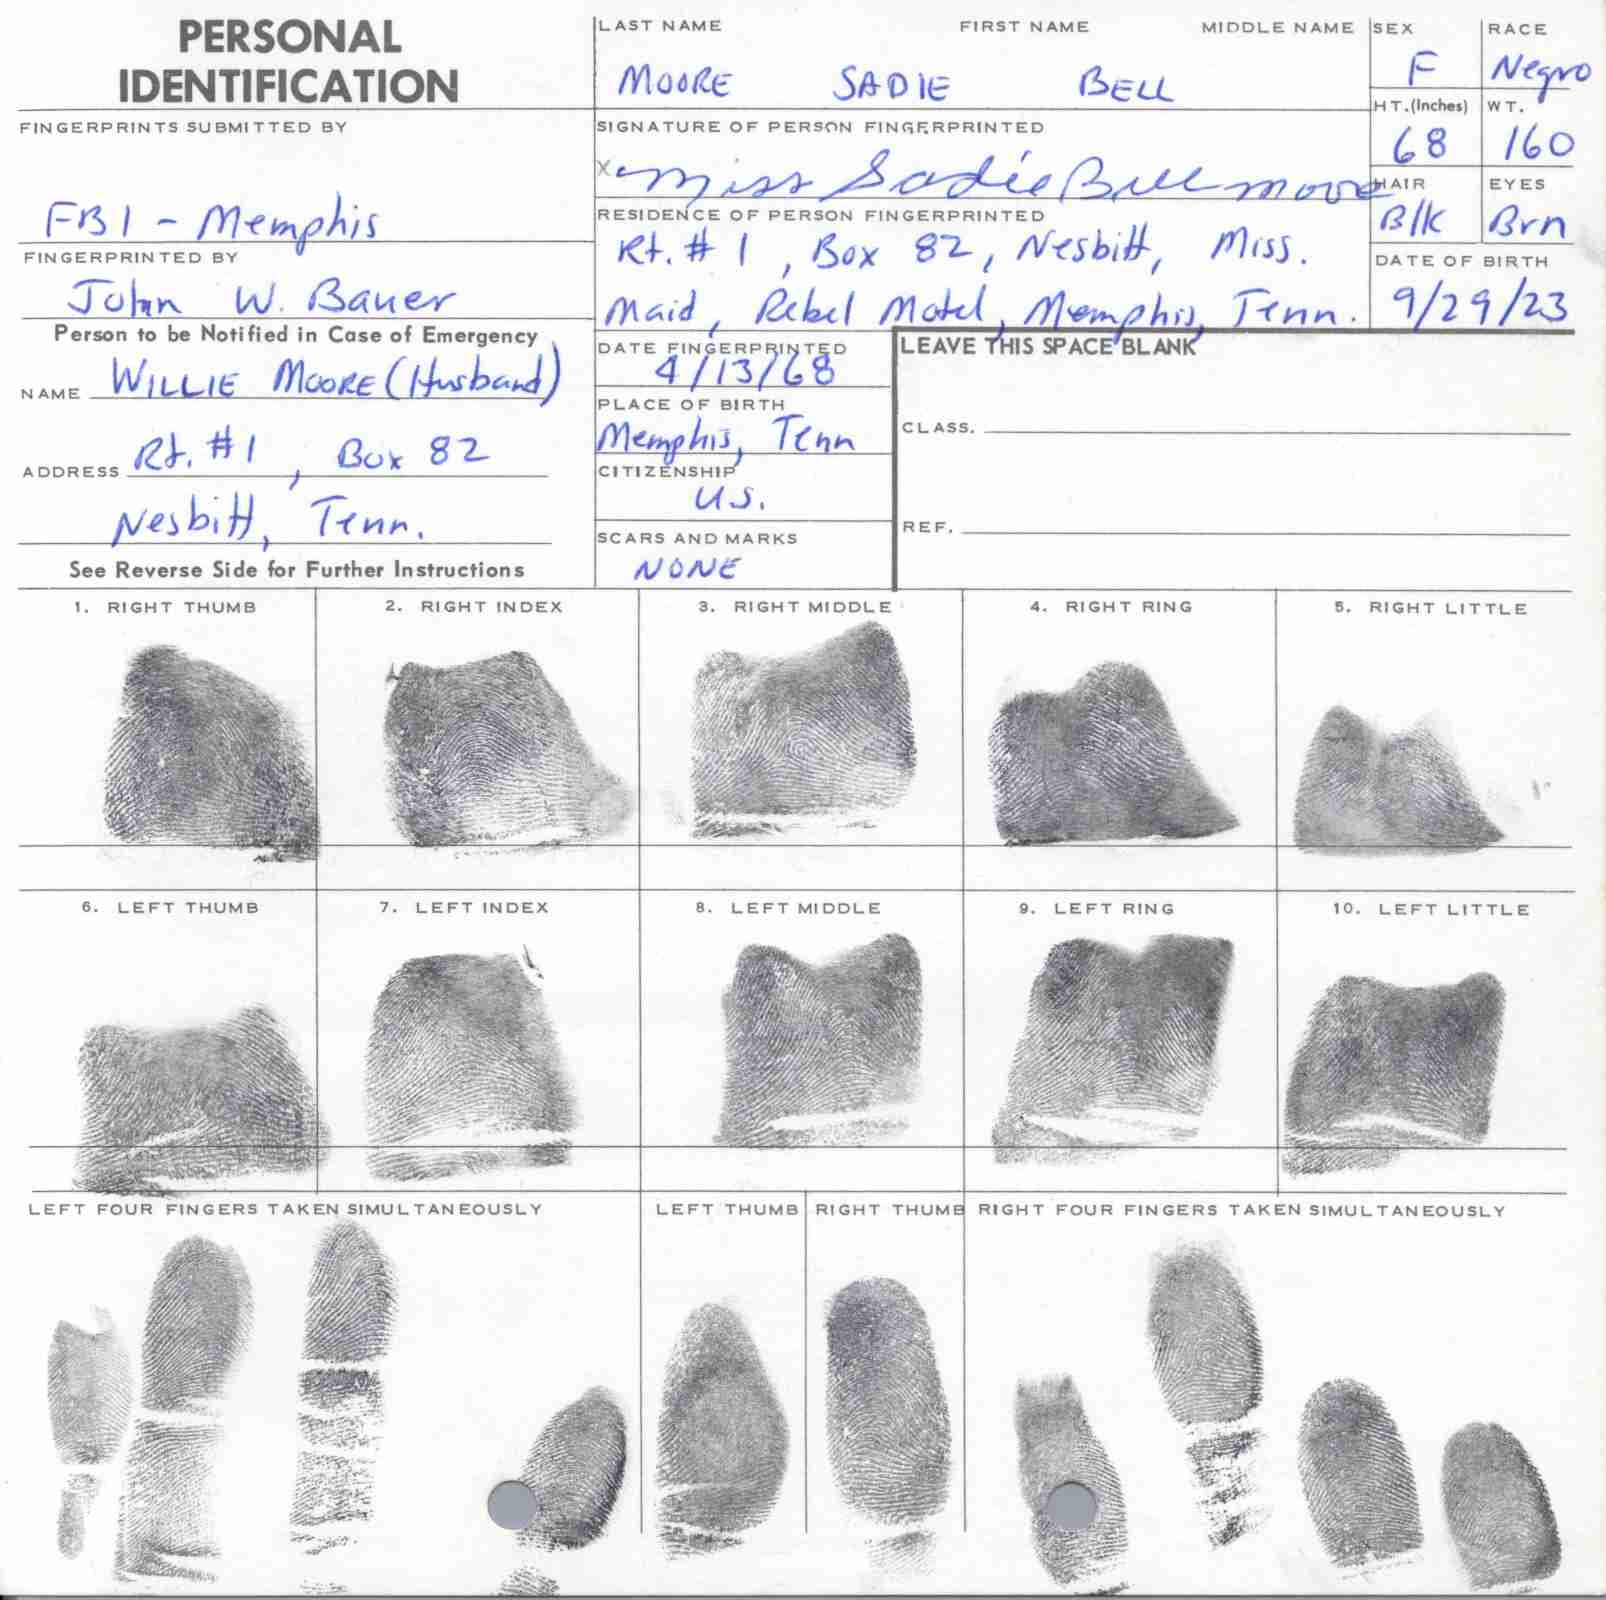 sadie b moore fingerprint card.jpg